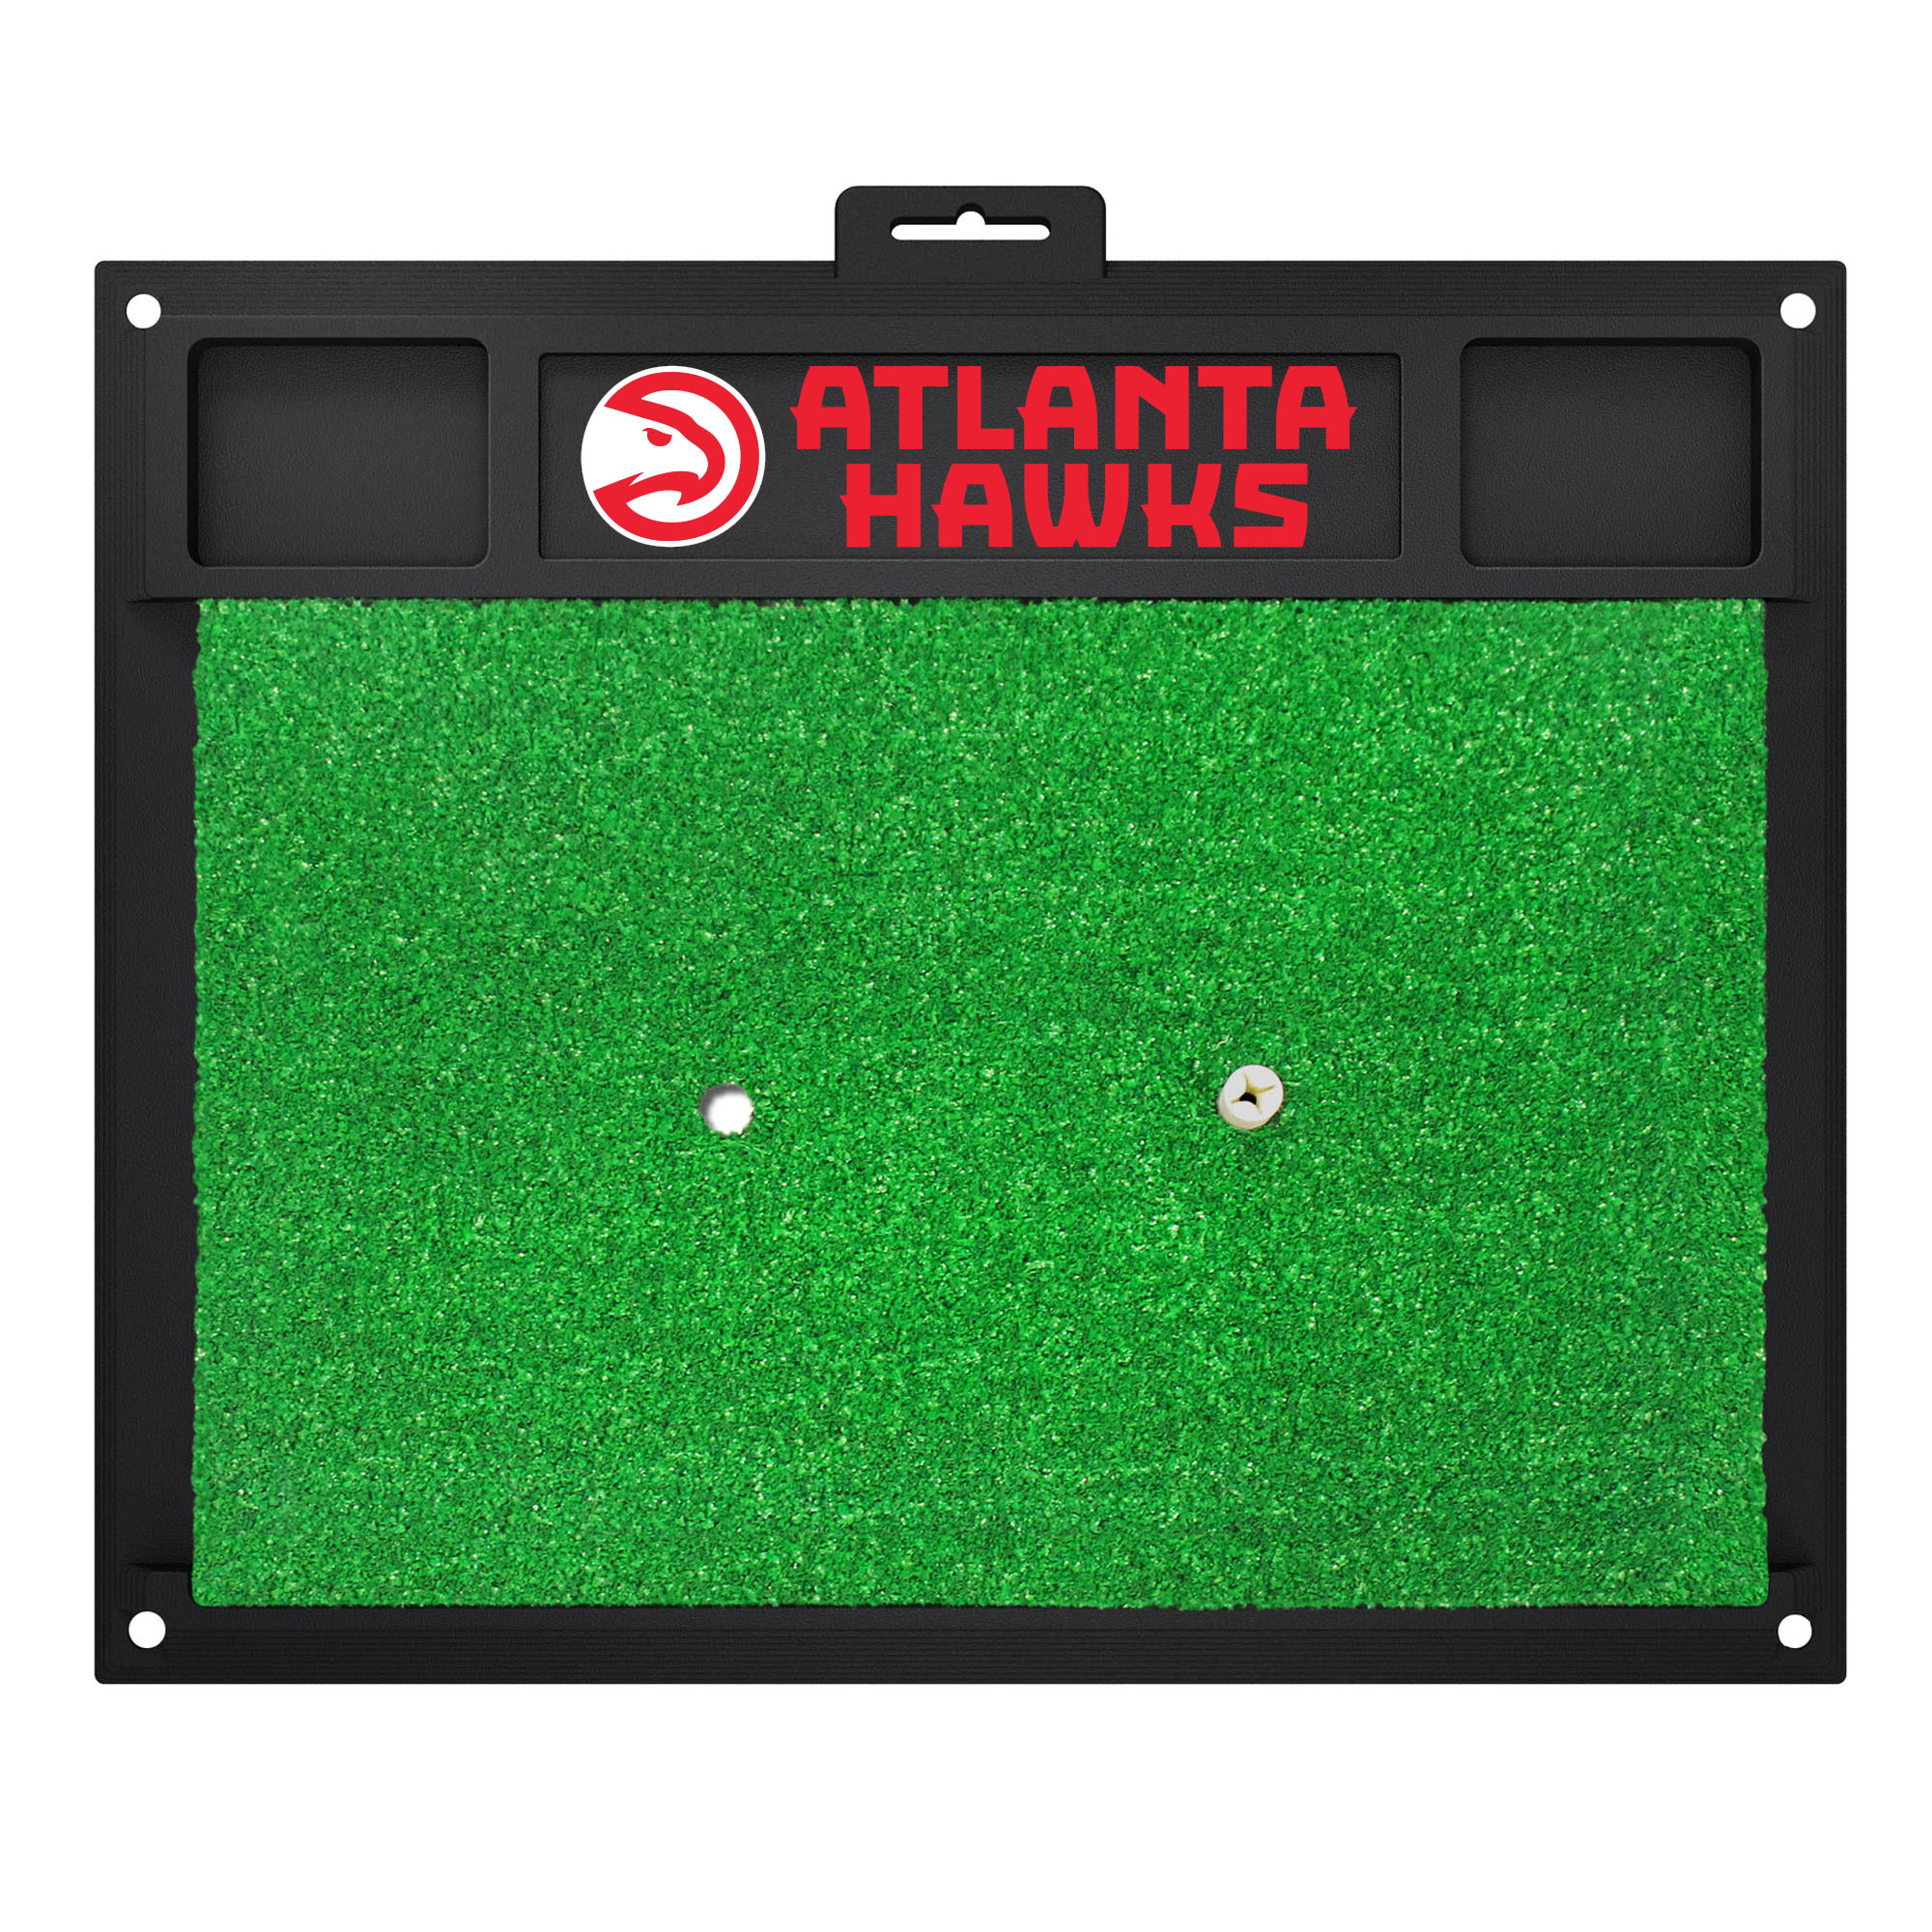 NBA Atlanta Hawks Golf Hitting Mat Golf Practice Accessory